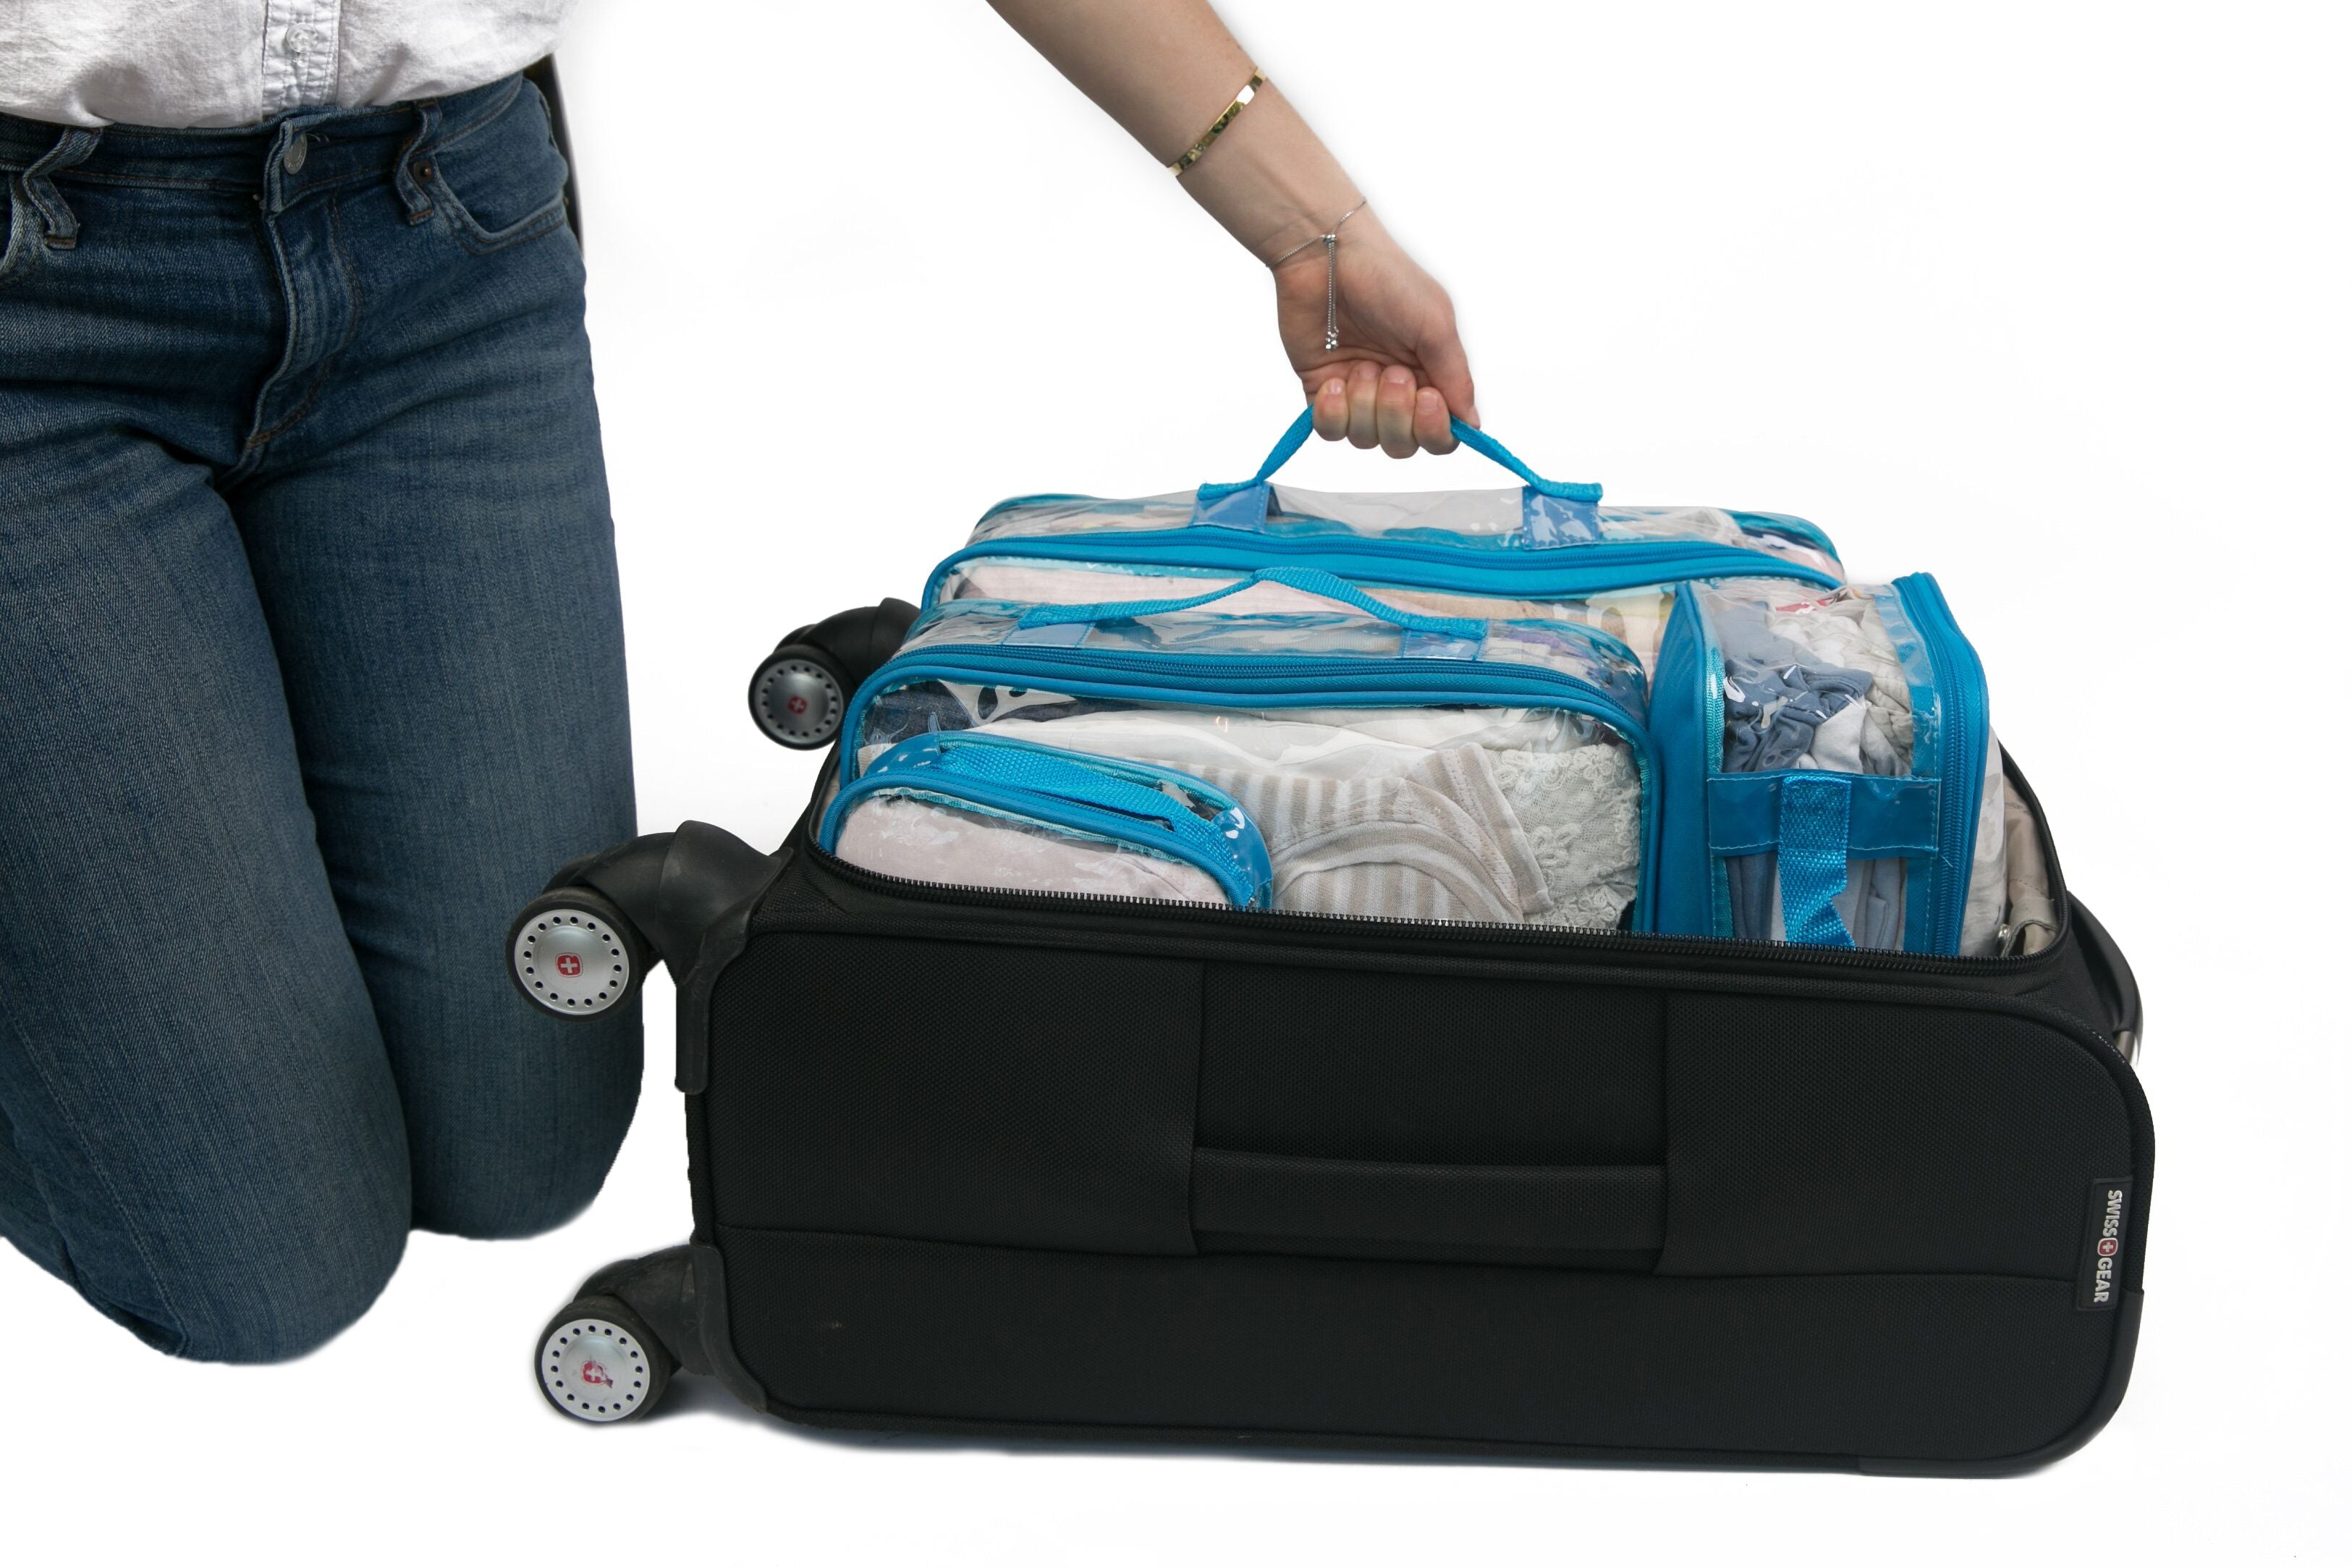 How to pick the right suitcase